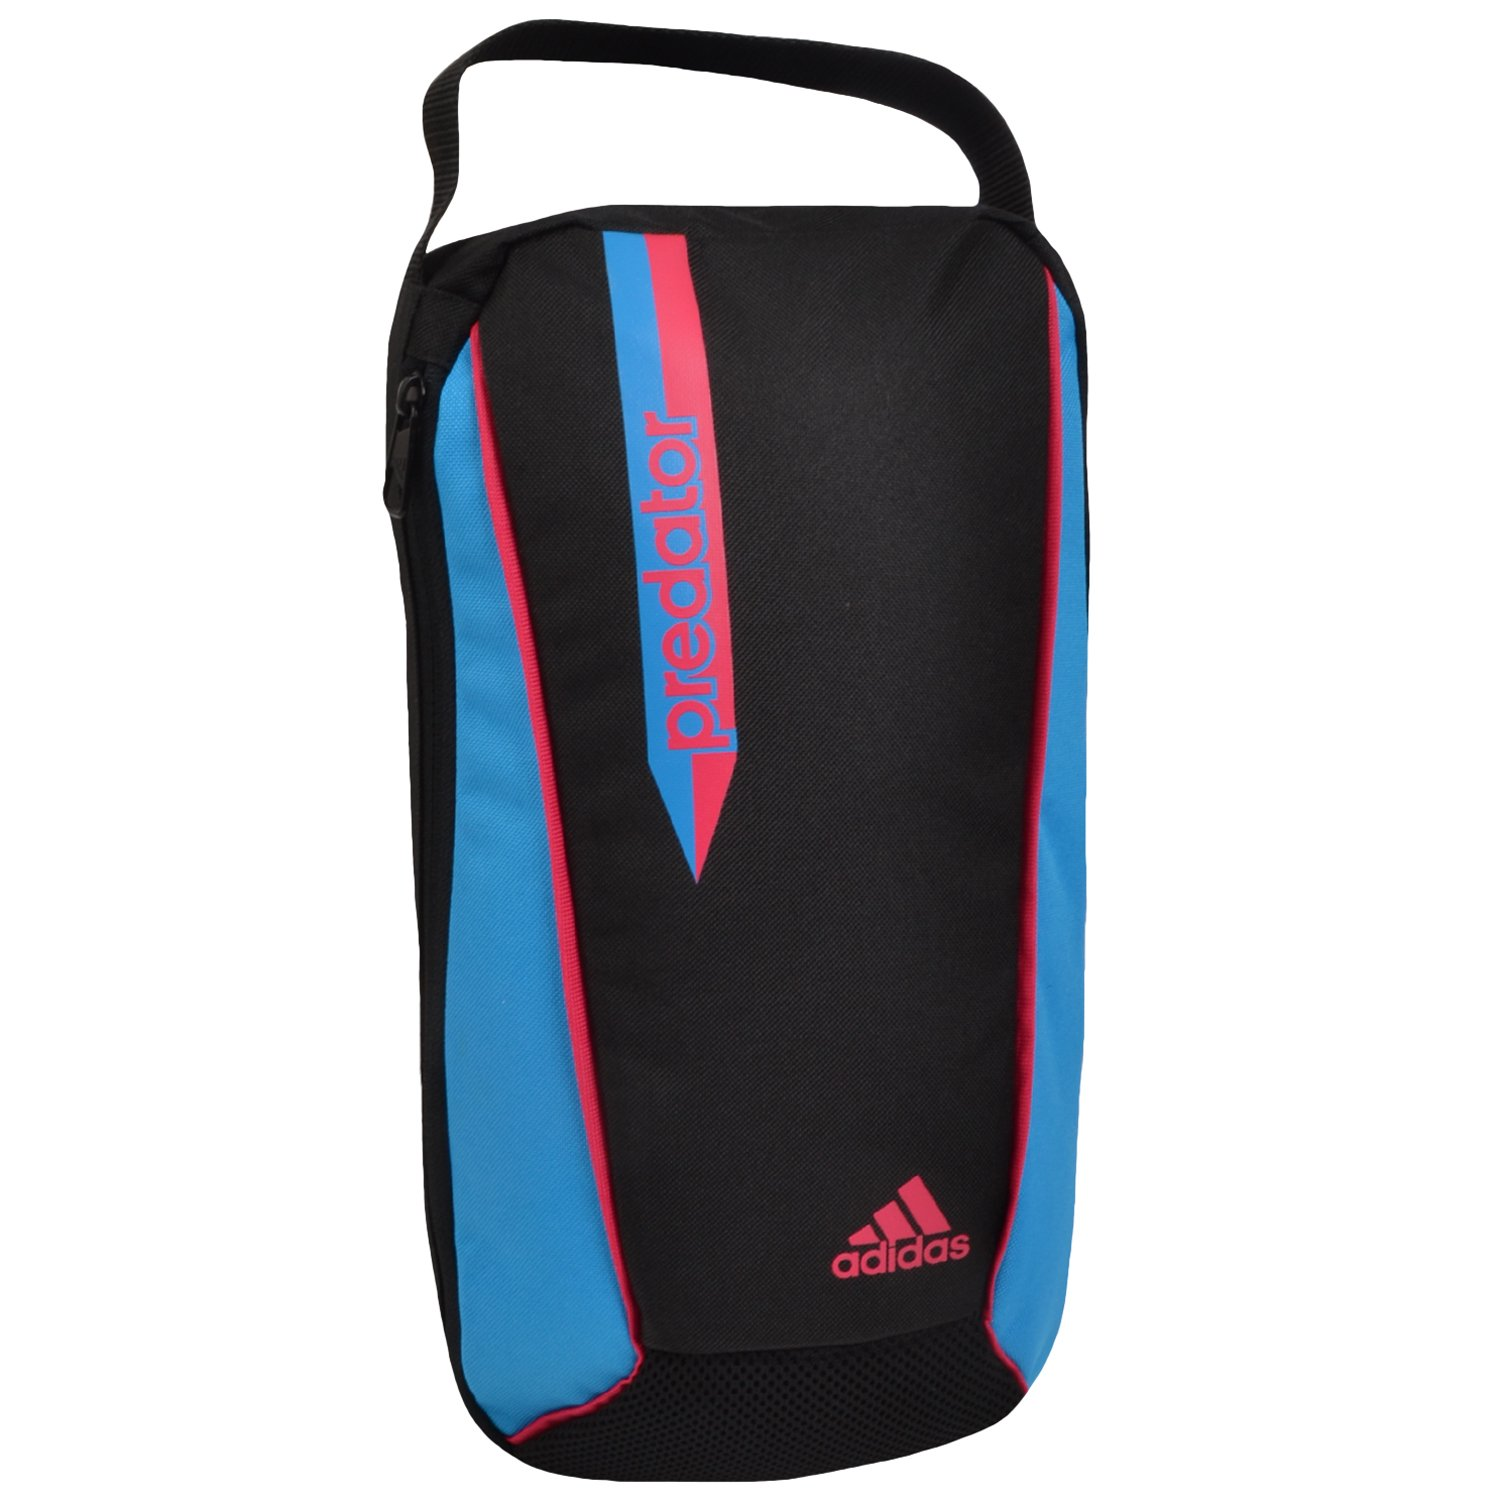 Adidas Predator SB Shoe trainers boots bag  Amazon.co.uk  Sports   Outdoors 99608a2ced0ae